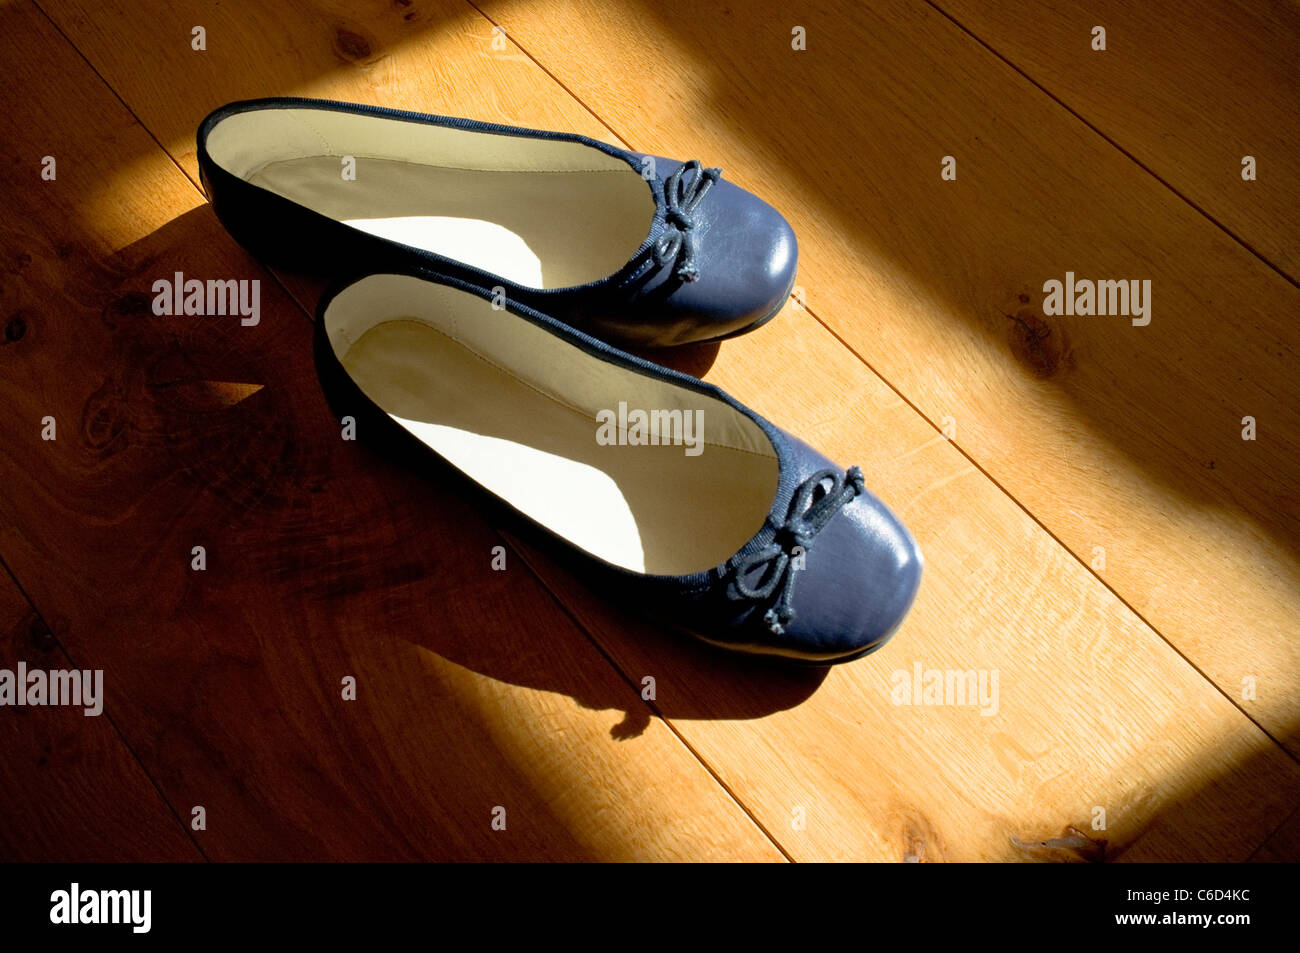 Navy ballet style shoes / pumps - in the spotlight on wooden boards / stage. - Stock Image